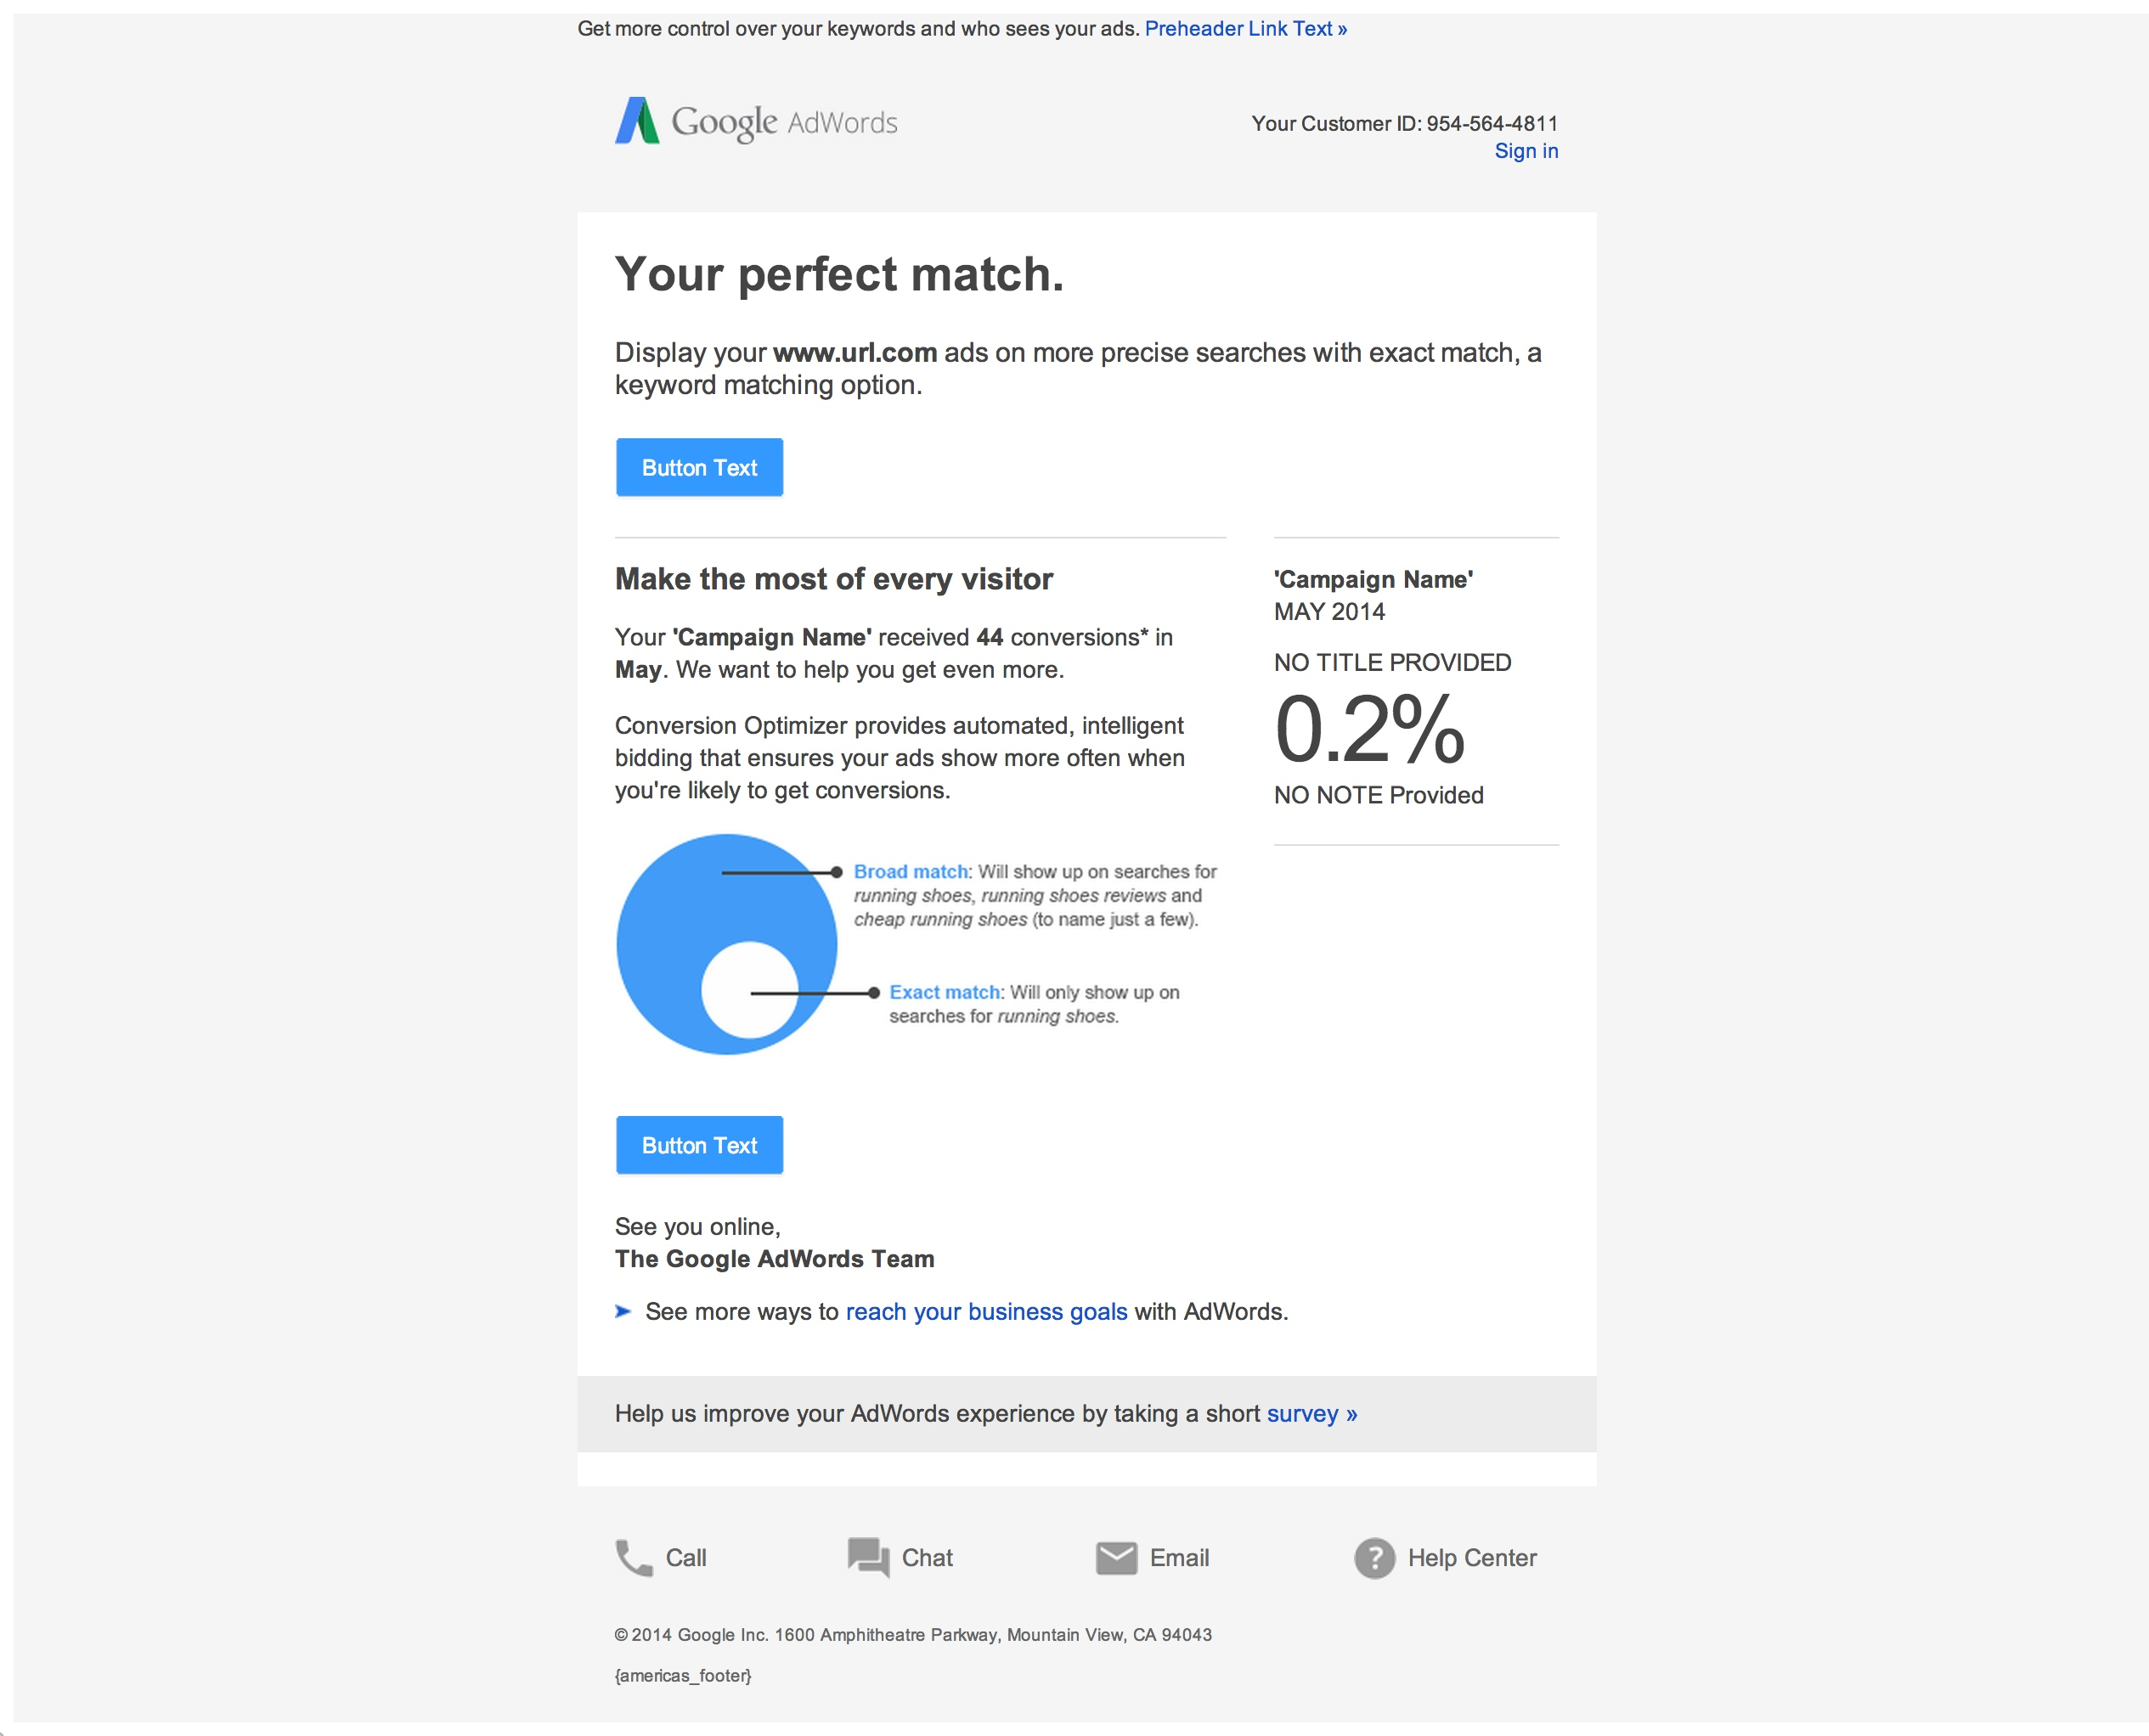 Boe Gatiss - 'Your Perfect Match' Email for Google AdWords